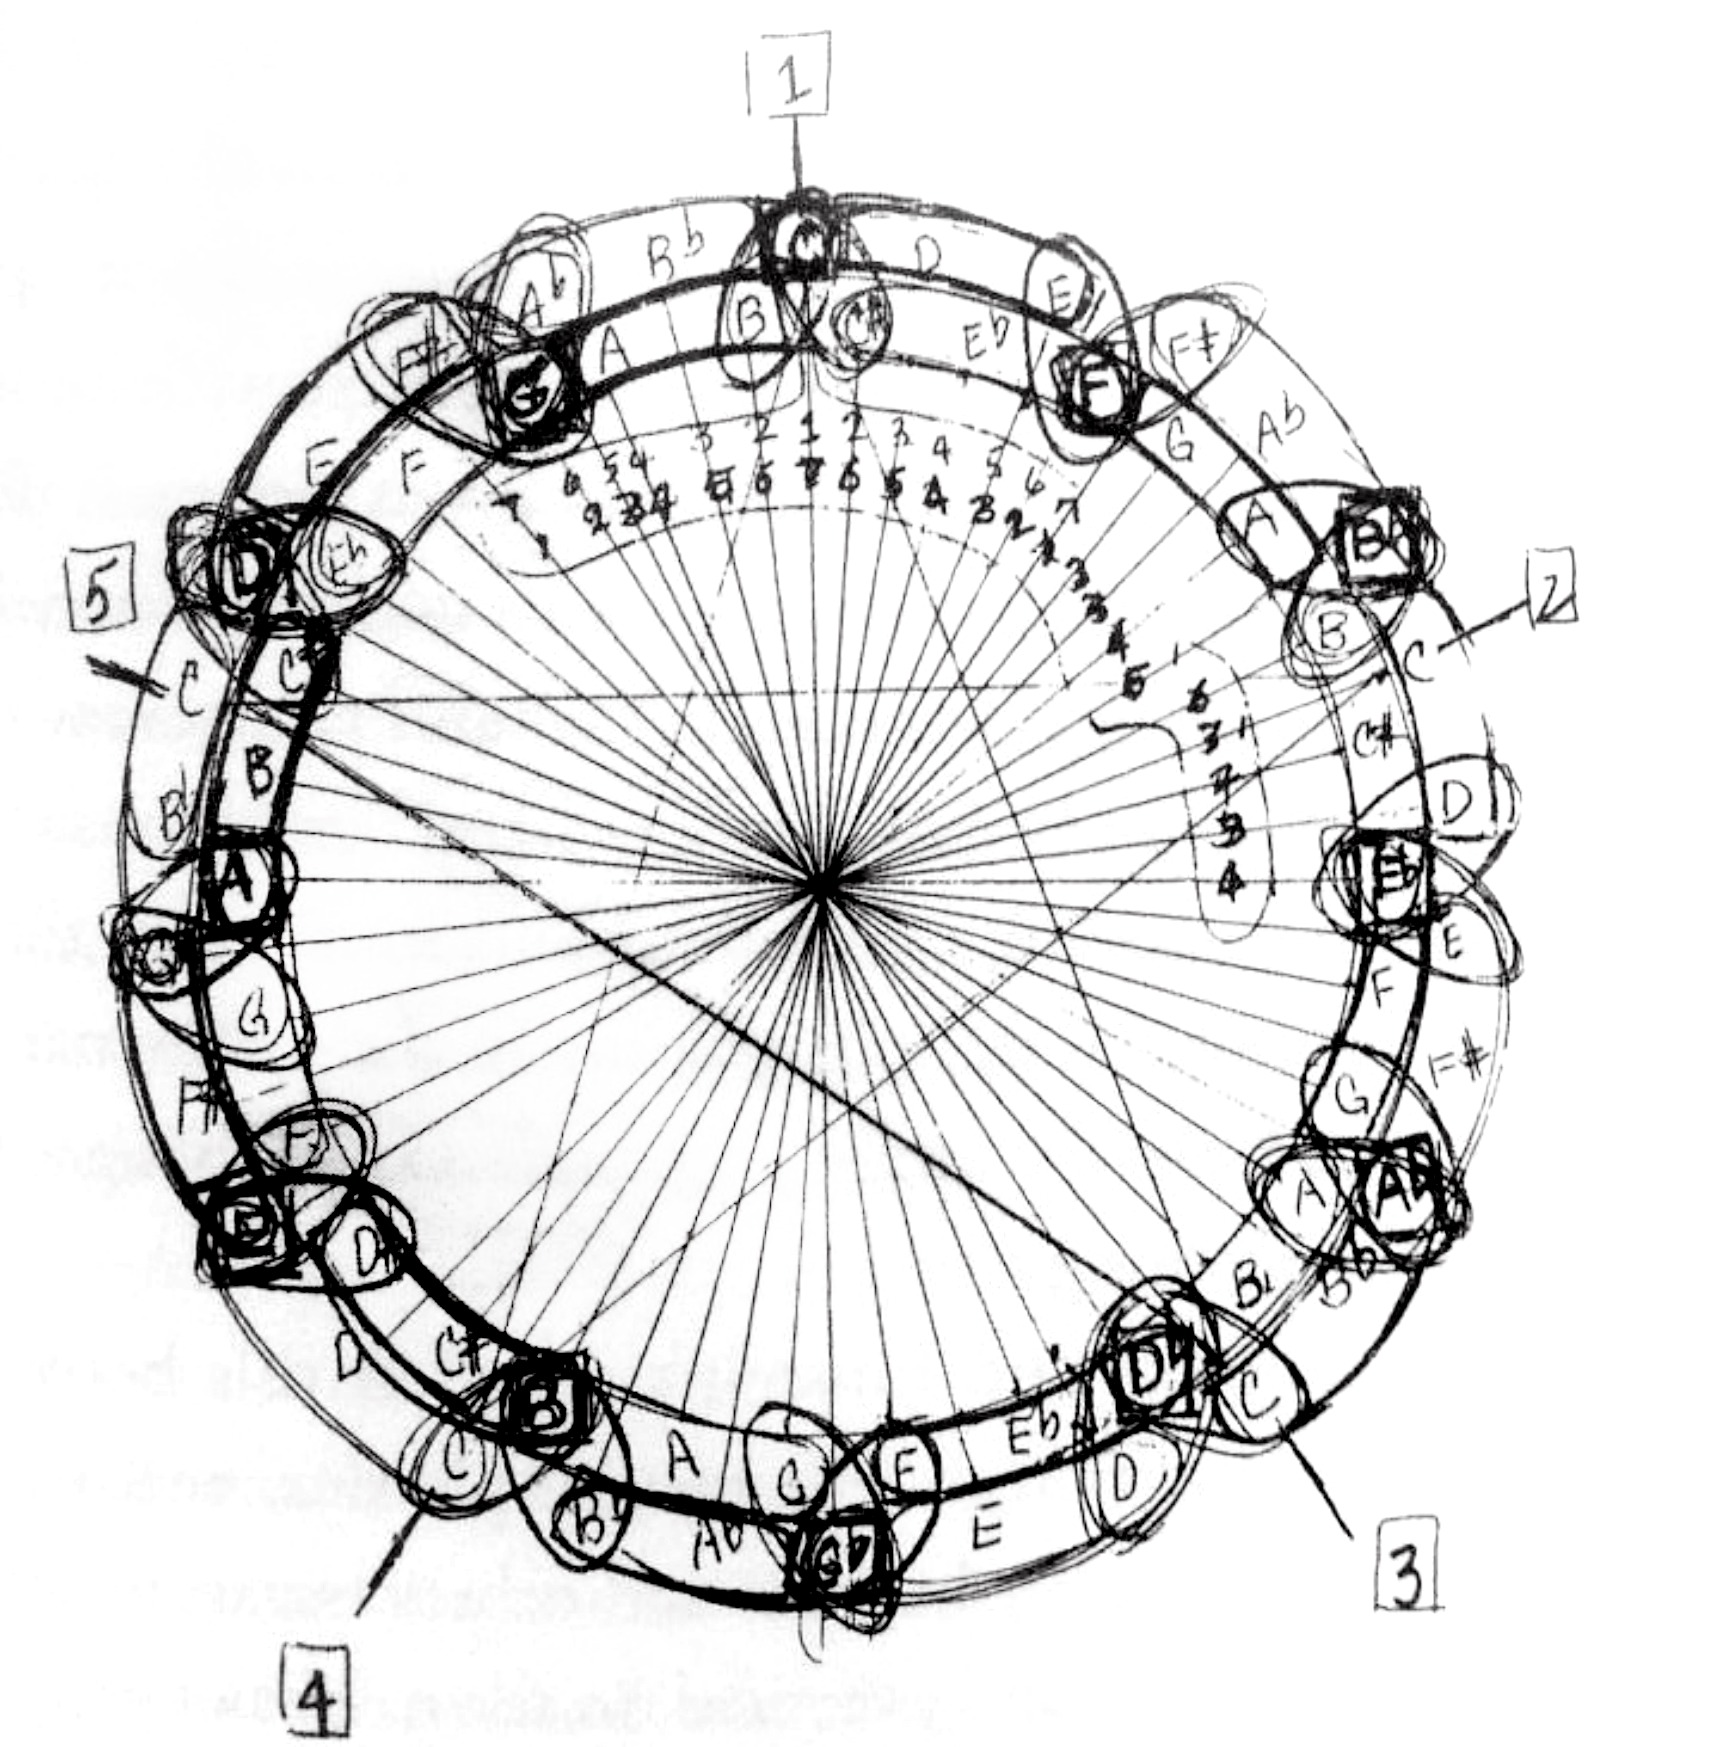 1720x1747 John Coltrane's Drawing Of The Mathematical Soul Of Music